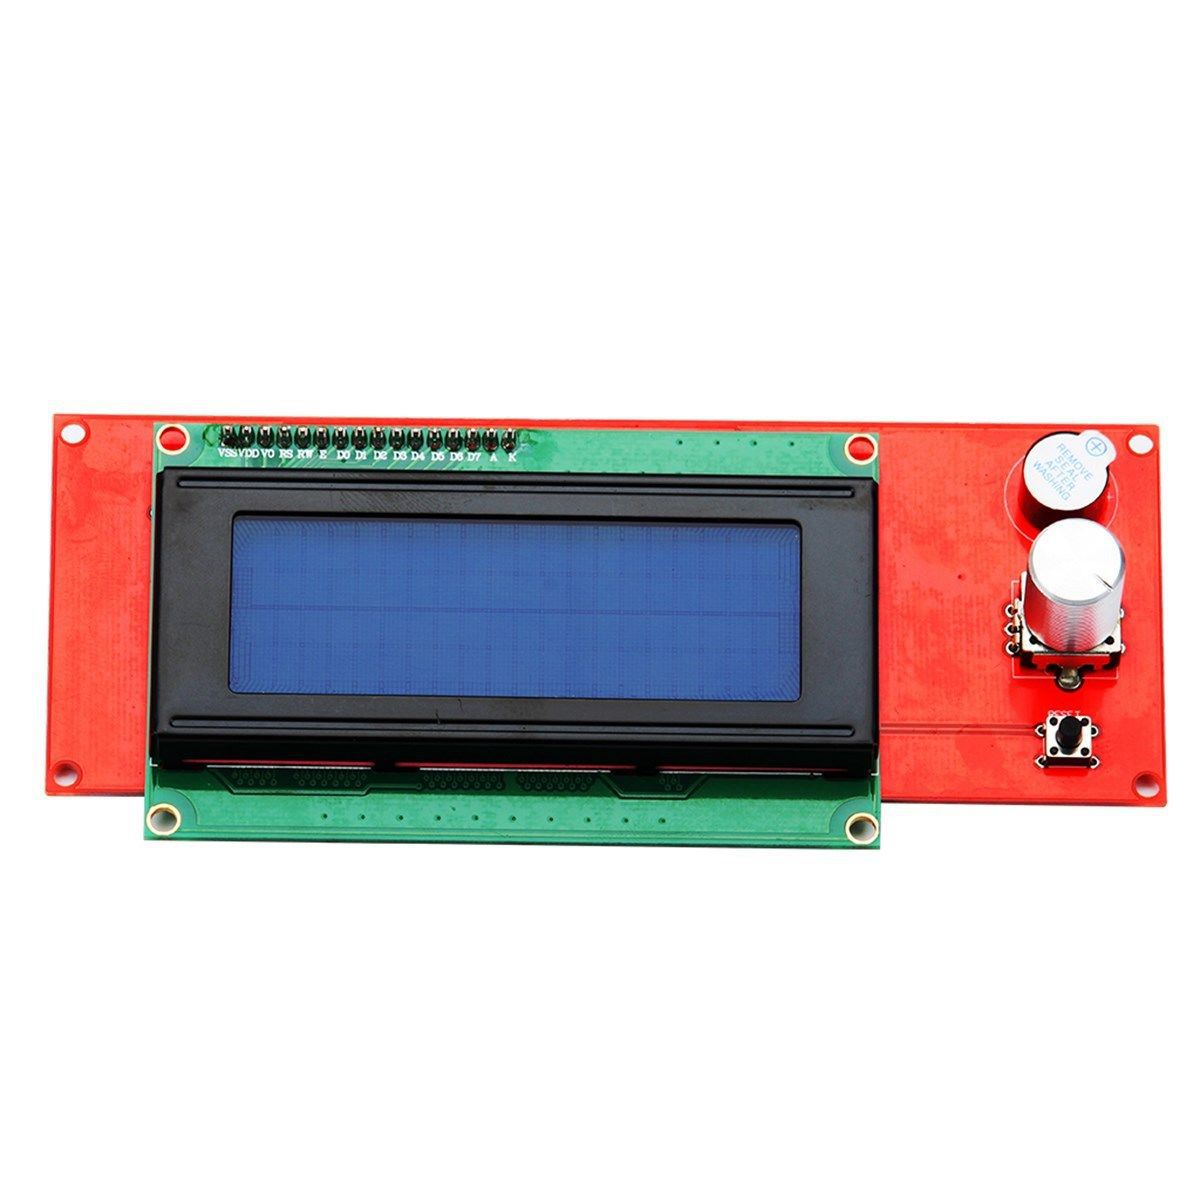 1PC Durable Mini-Rambo 1.3 Control PCB Board and LCD Screen Kit 3D Printing Part-SCLL fx2n 16mr es ul page 1